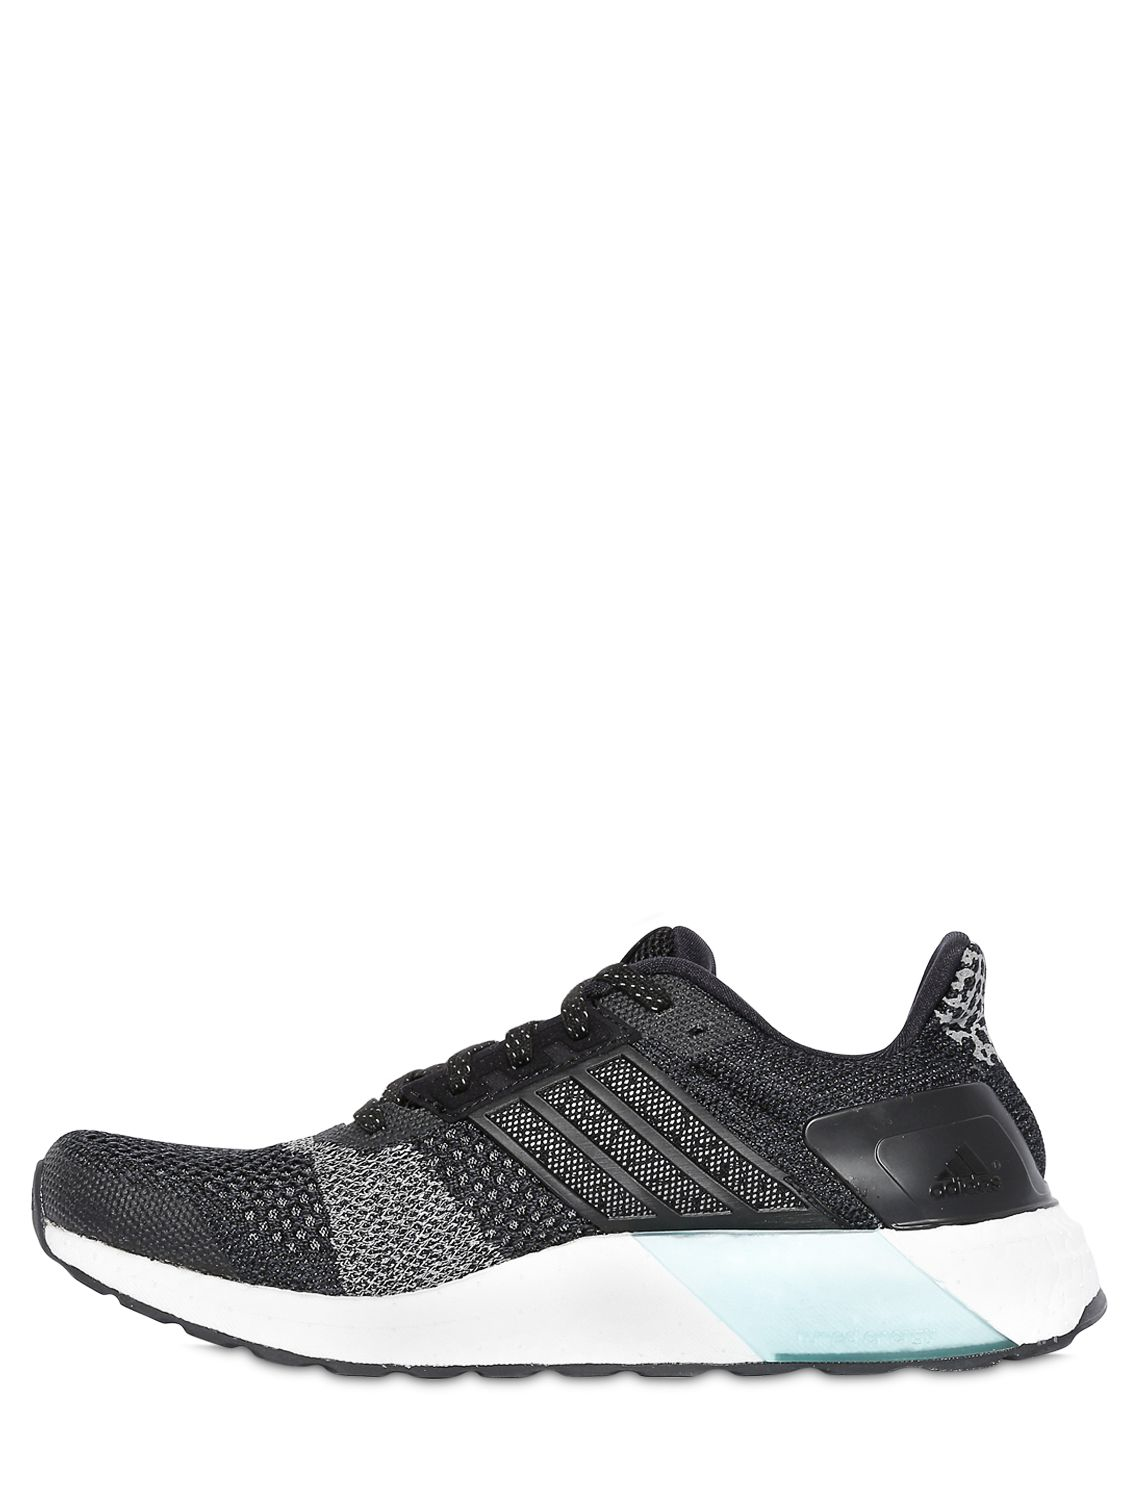 0bd2a5519 adidas Originals Ultra Boost St Glow Running Sneakers in Black - Lyst